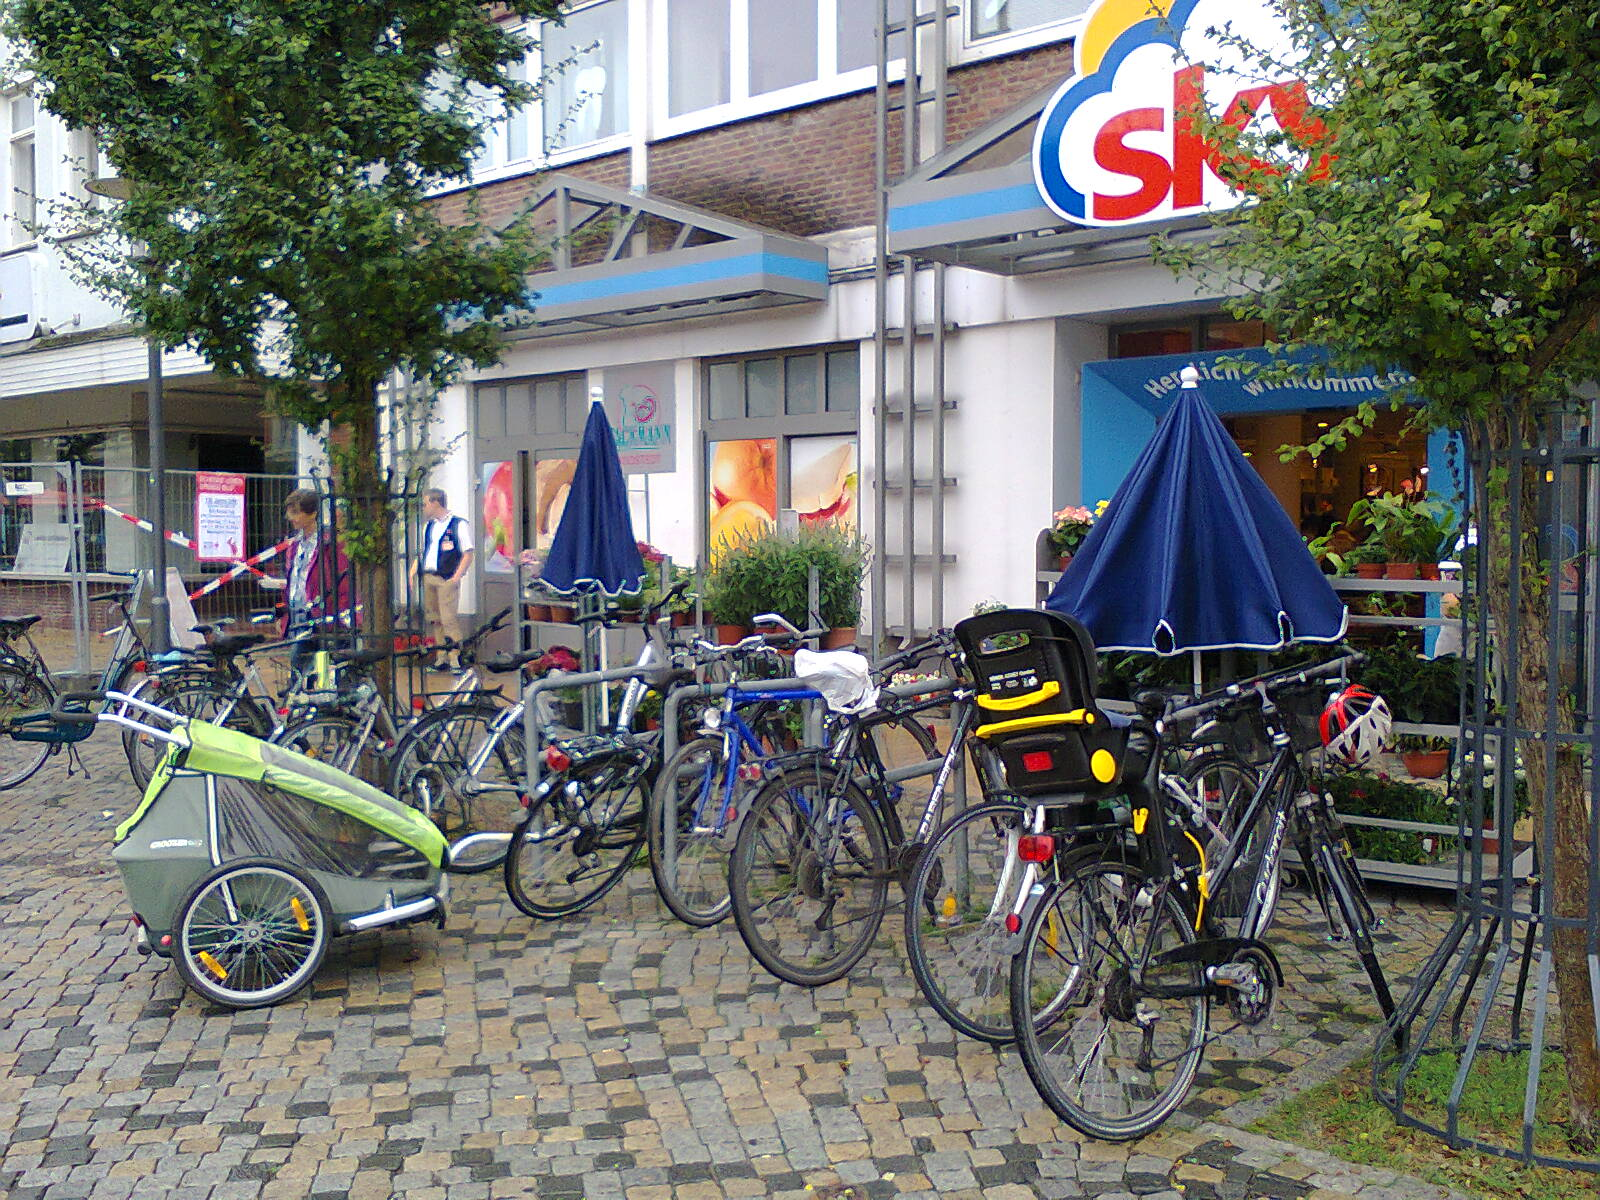 Shopping by bike in Germany